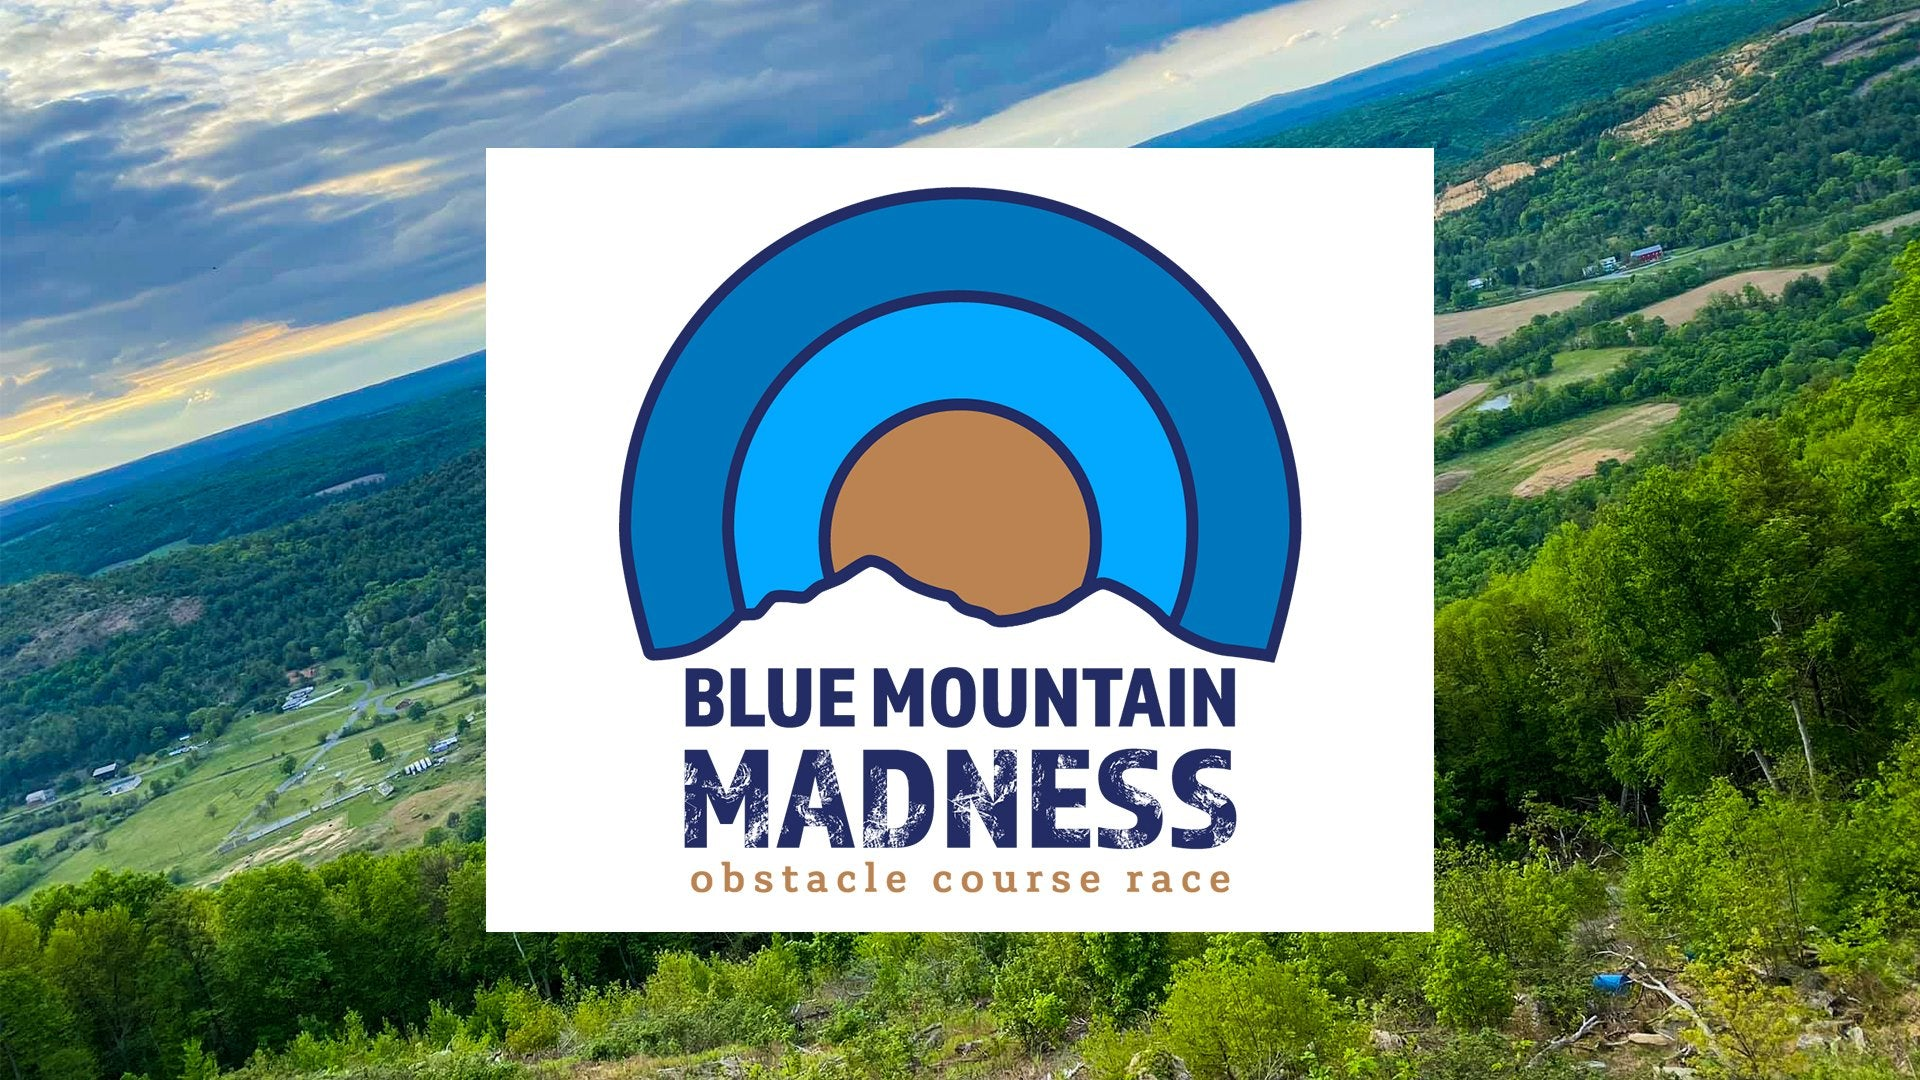 Blue Mountain Resort Obstacle Course Race - Oct 3